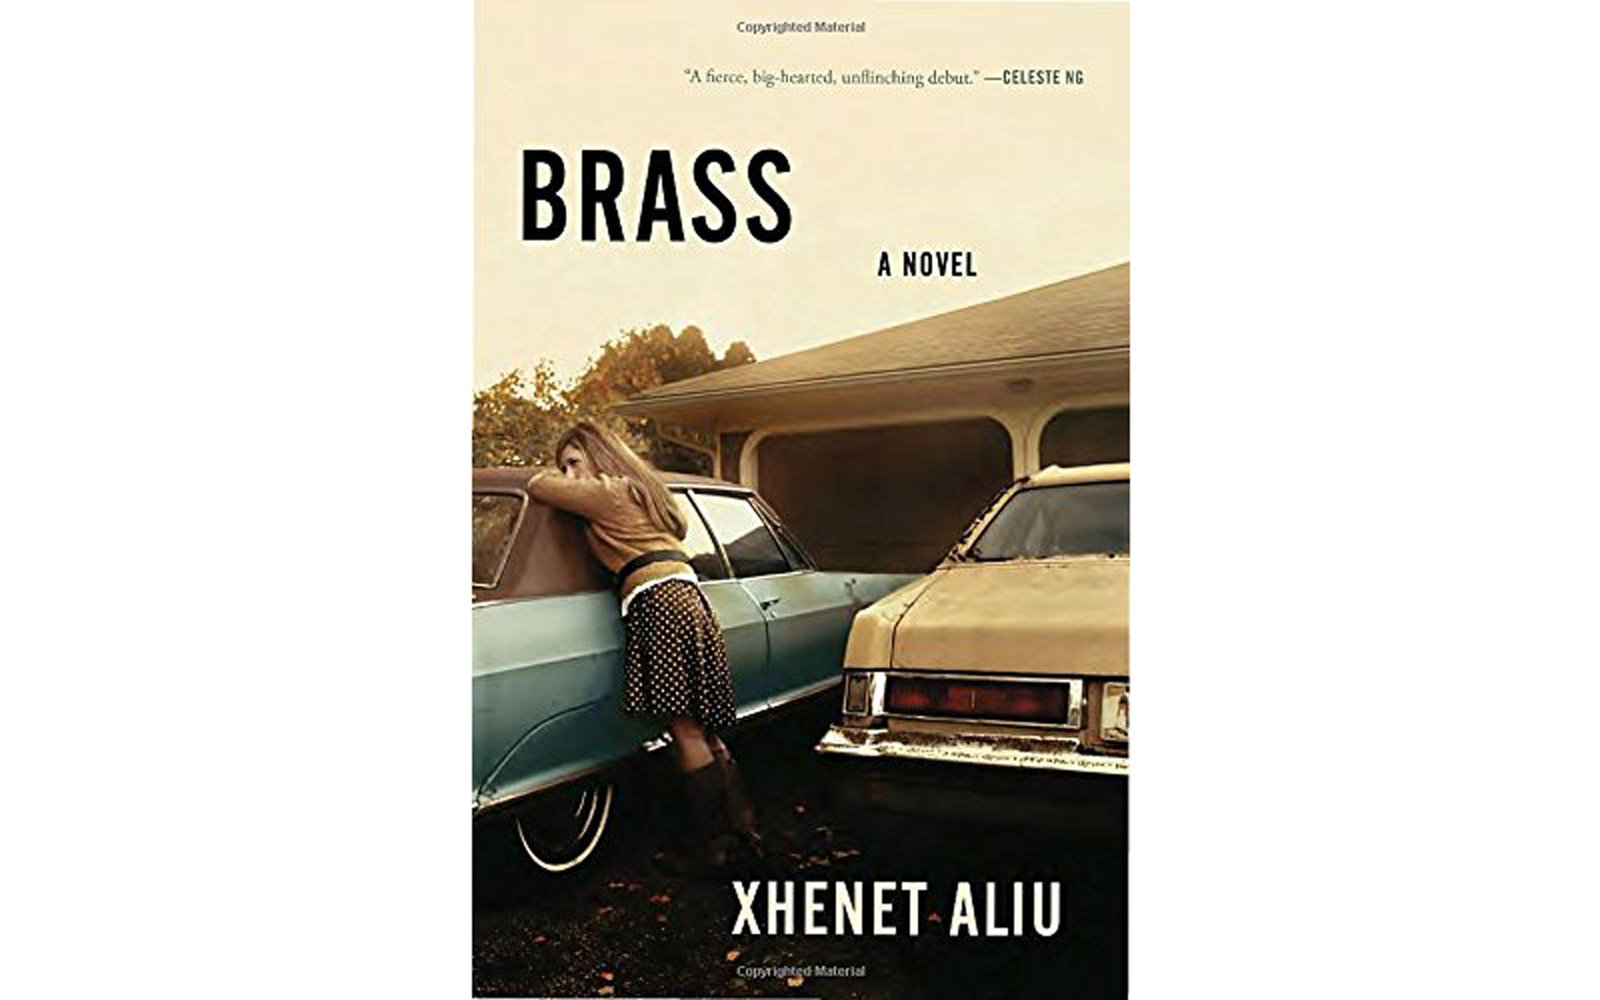 'Brass' by Xhenet Aliu